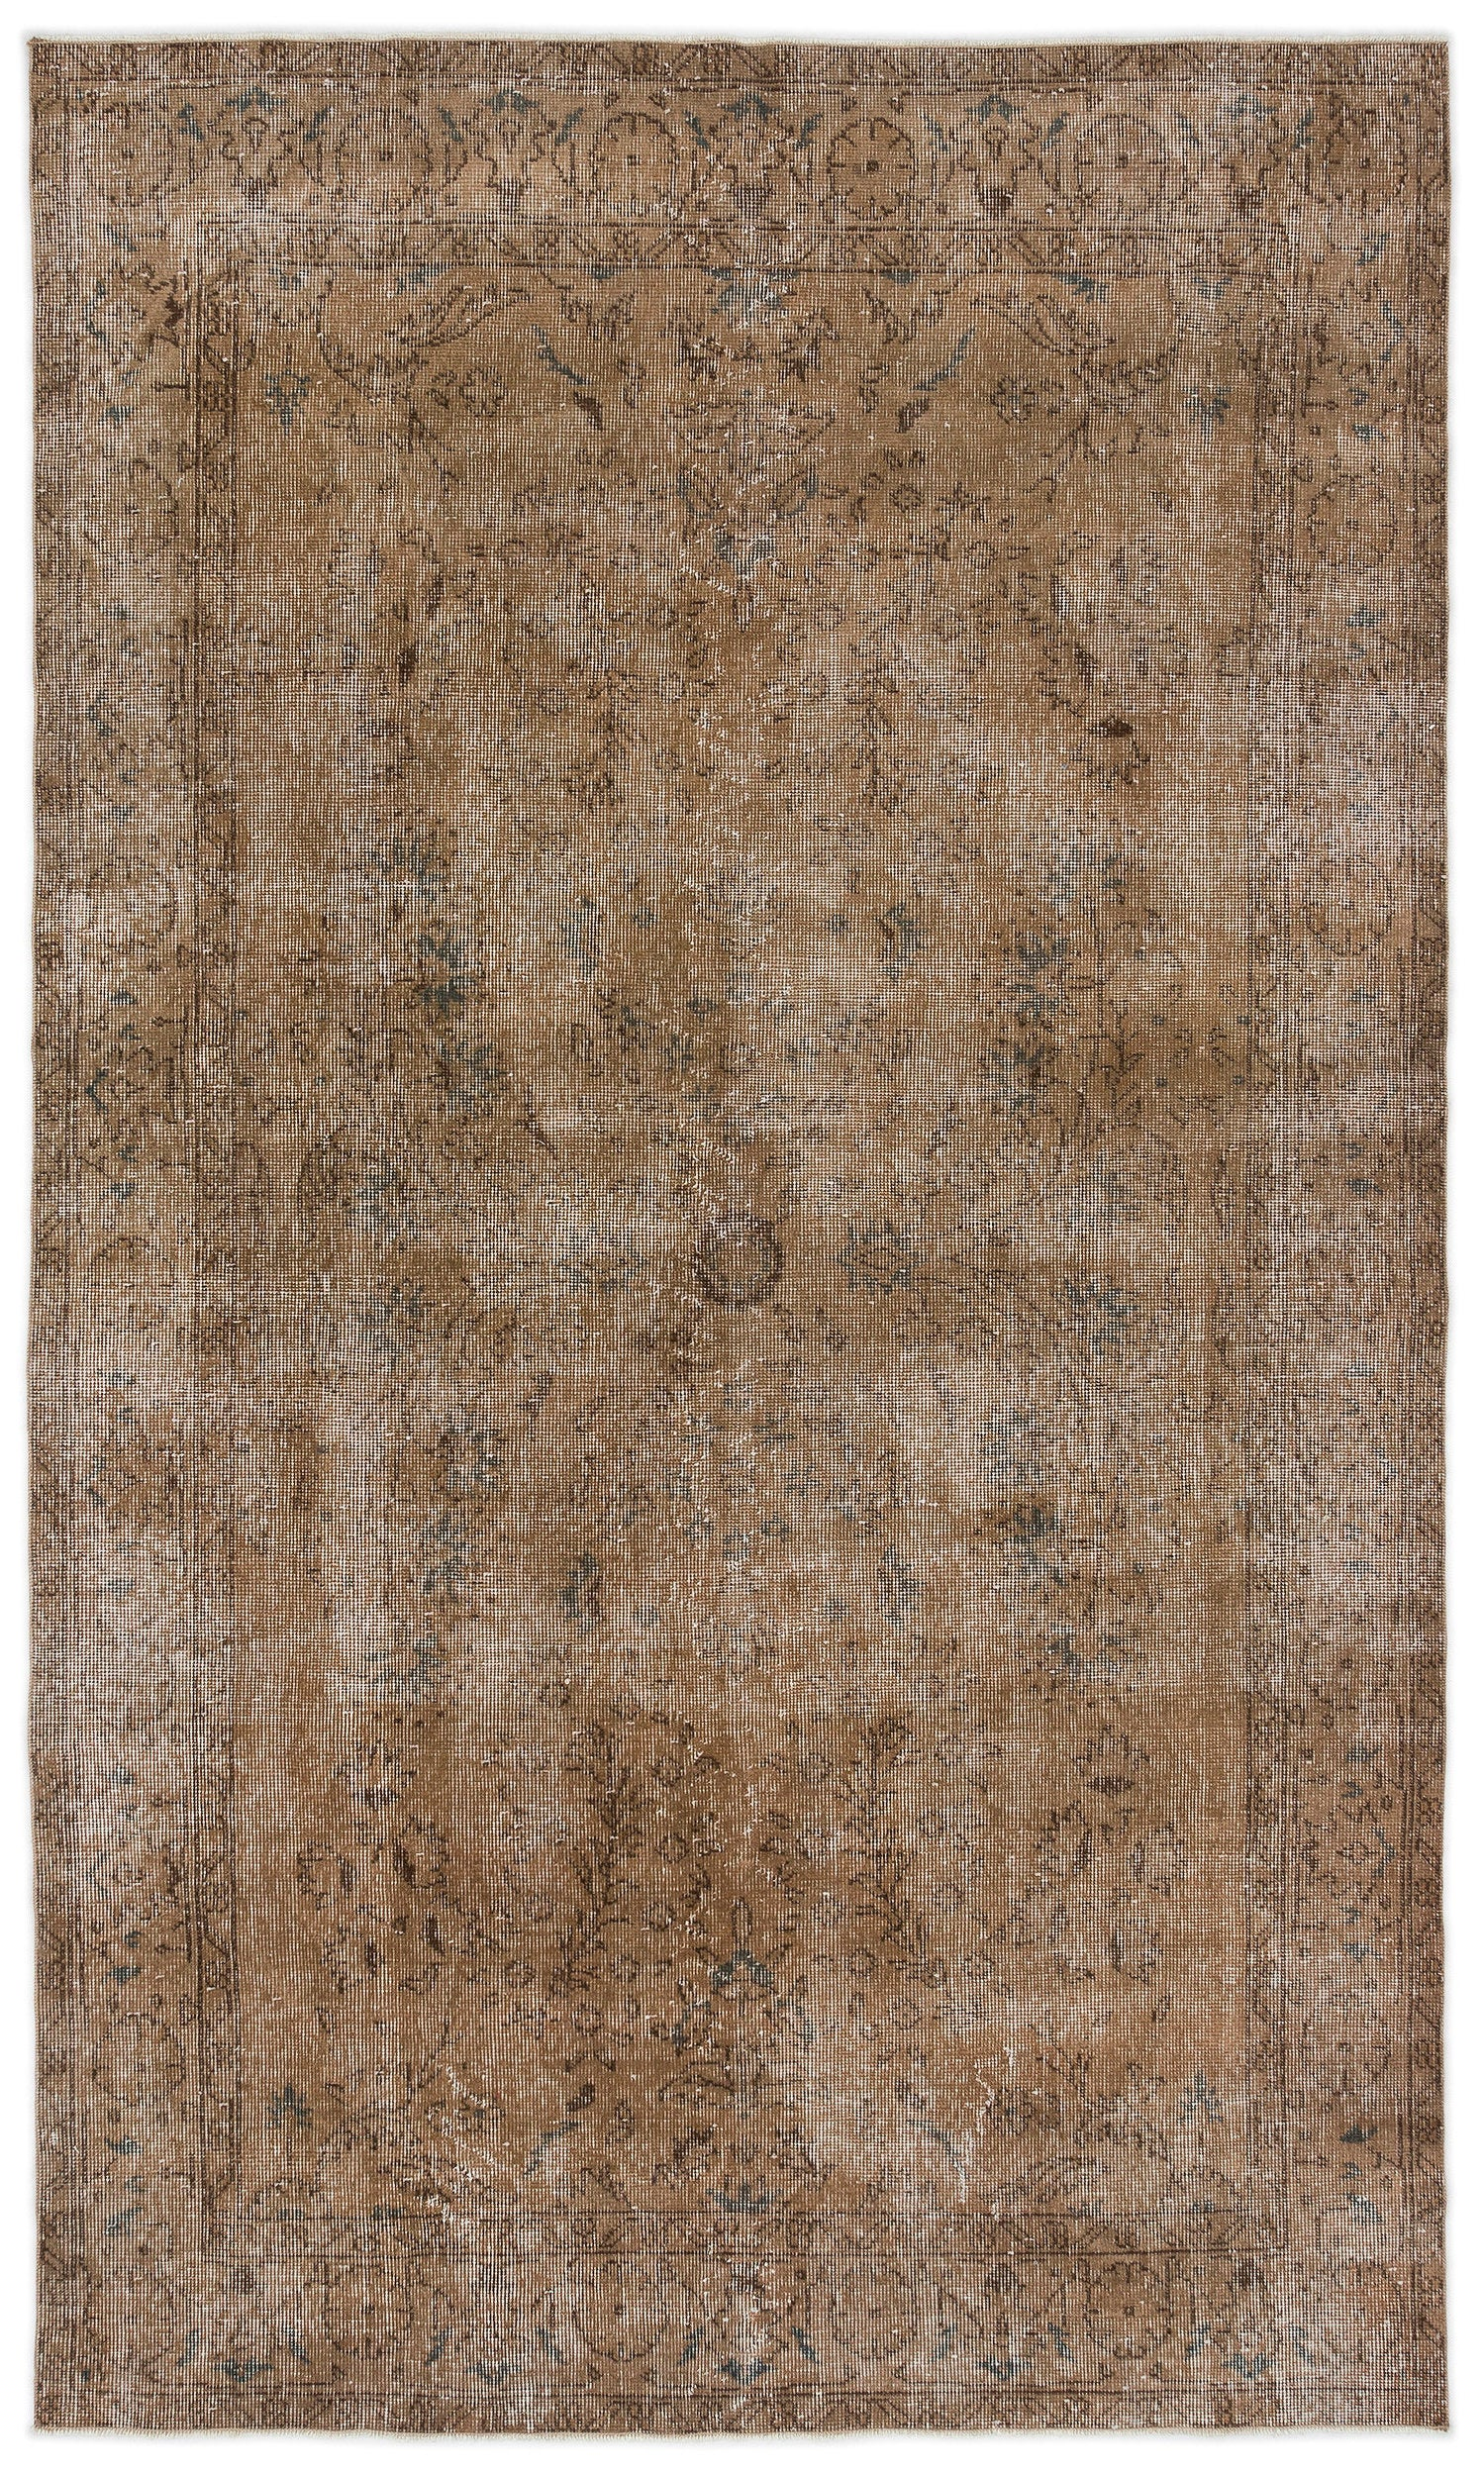 Brown Over Dyed Vintage Rug 5'2'' x 8'8'' ft 158 x 265 cm